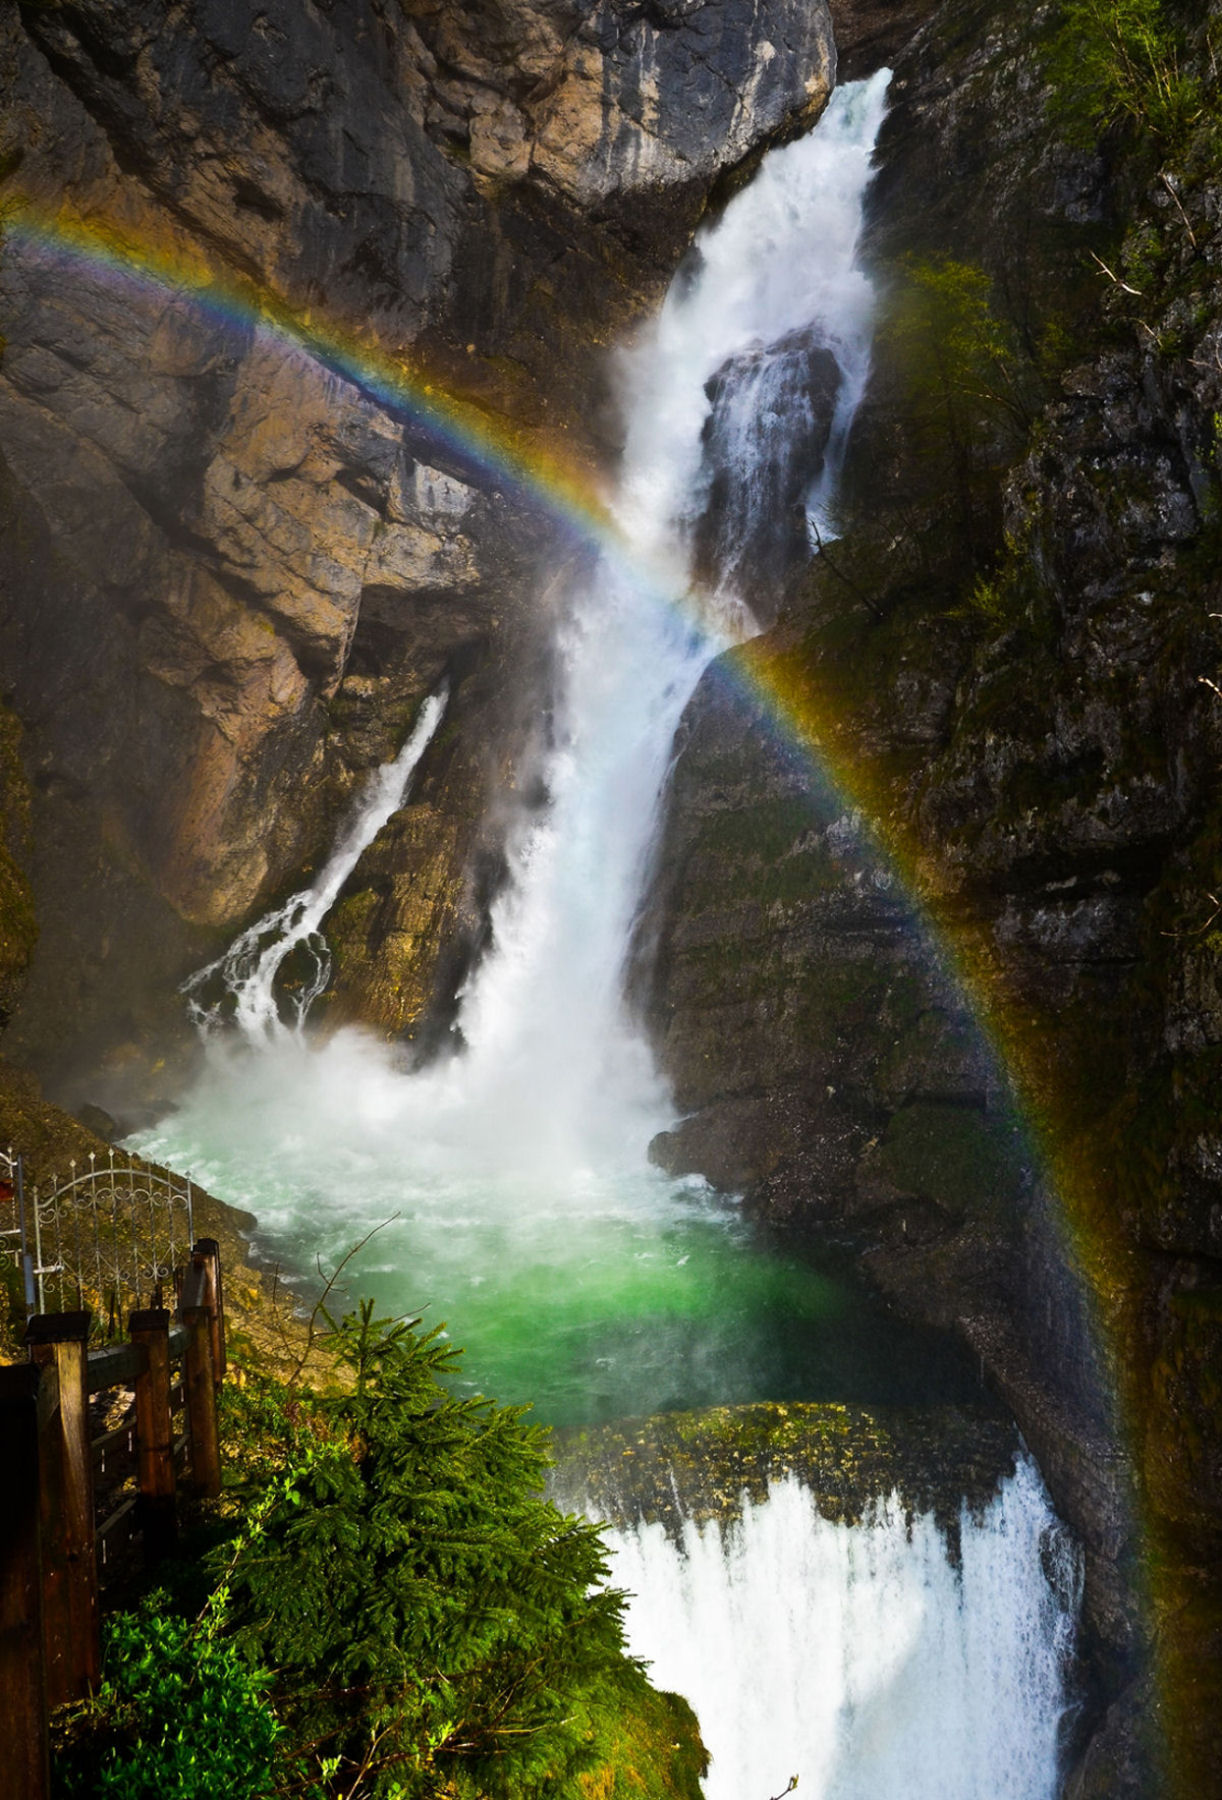 Savica Waterfall is an amazing natural attraction situated above Lake Bohinj, Slovenia